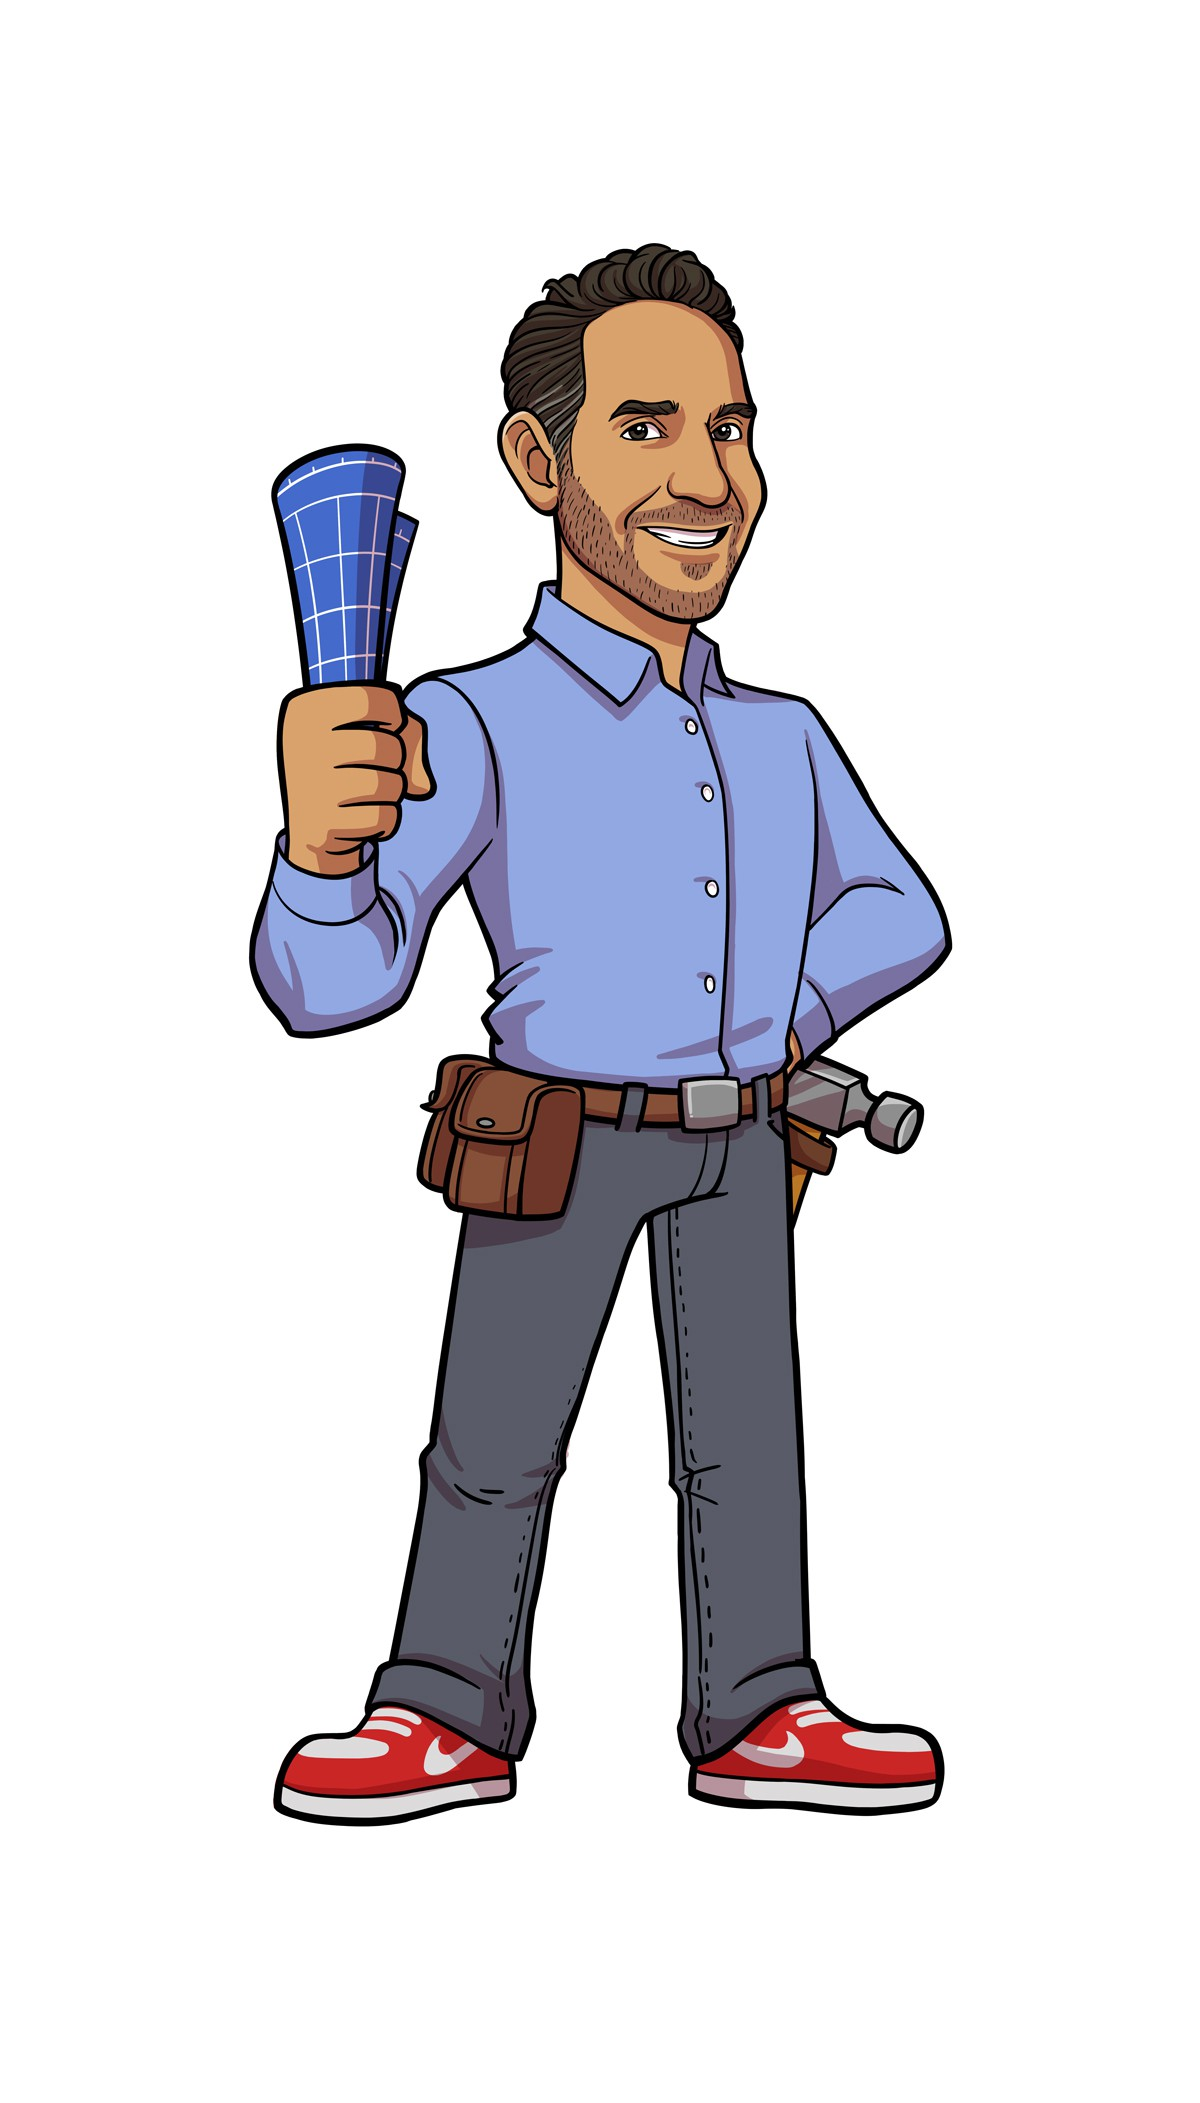 Hip Home Remodling Company wants a creative mascot design  AskDMac.com answering all there home improvement problems